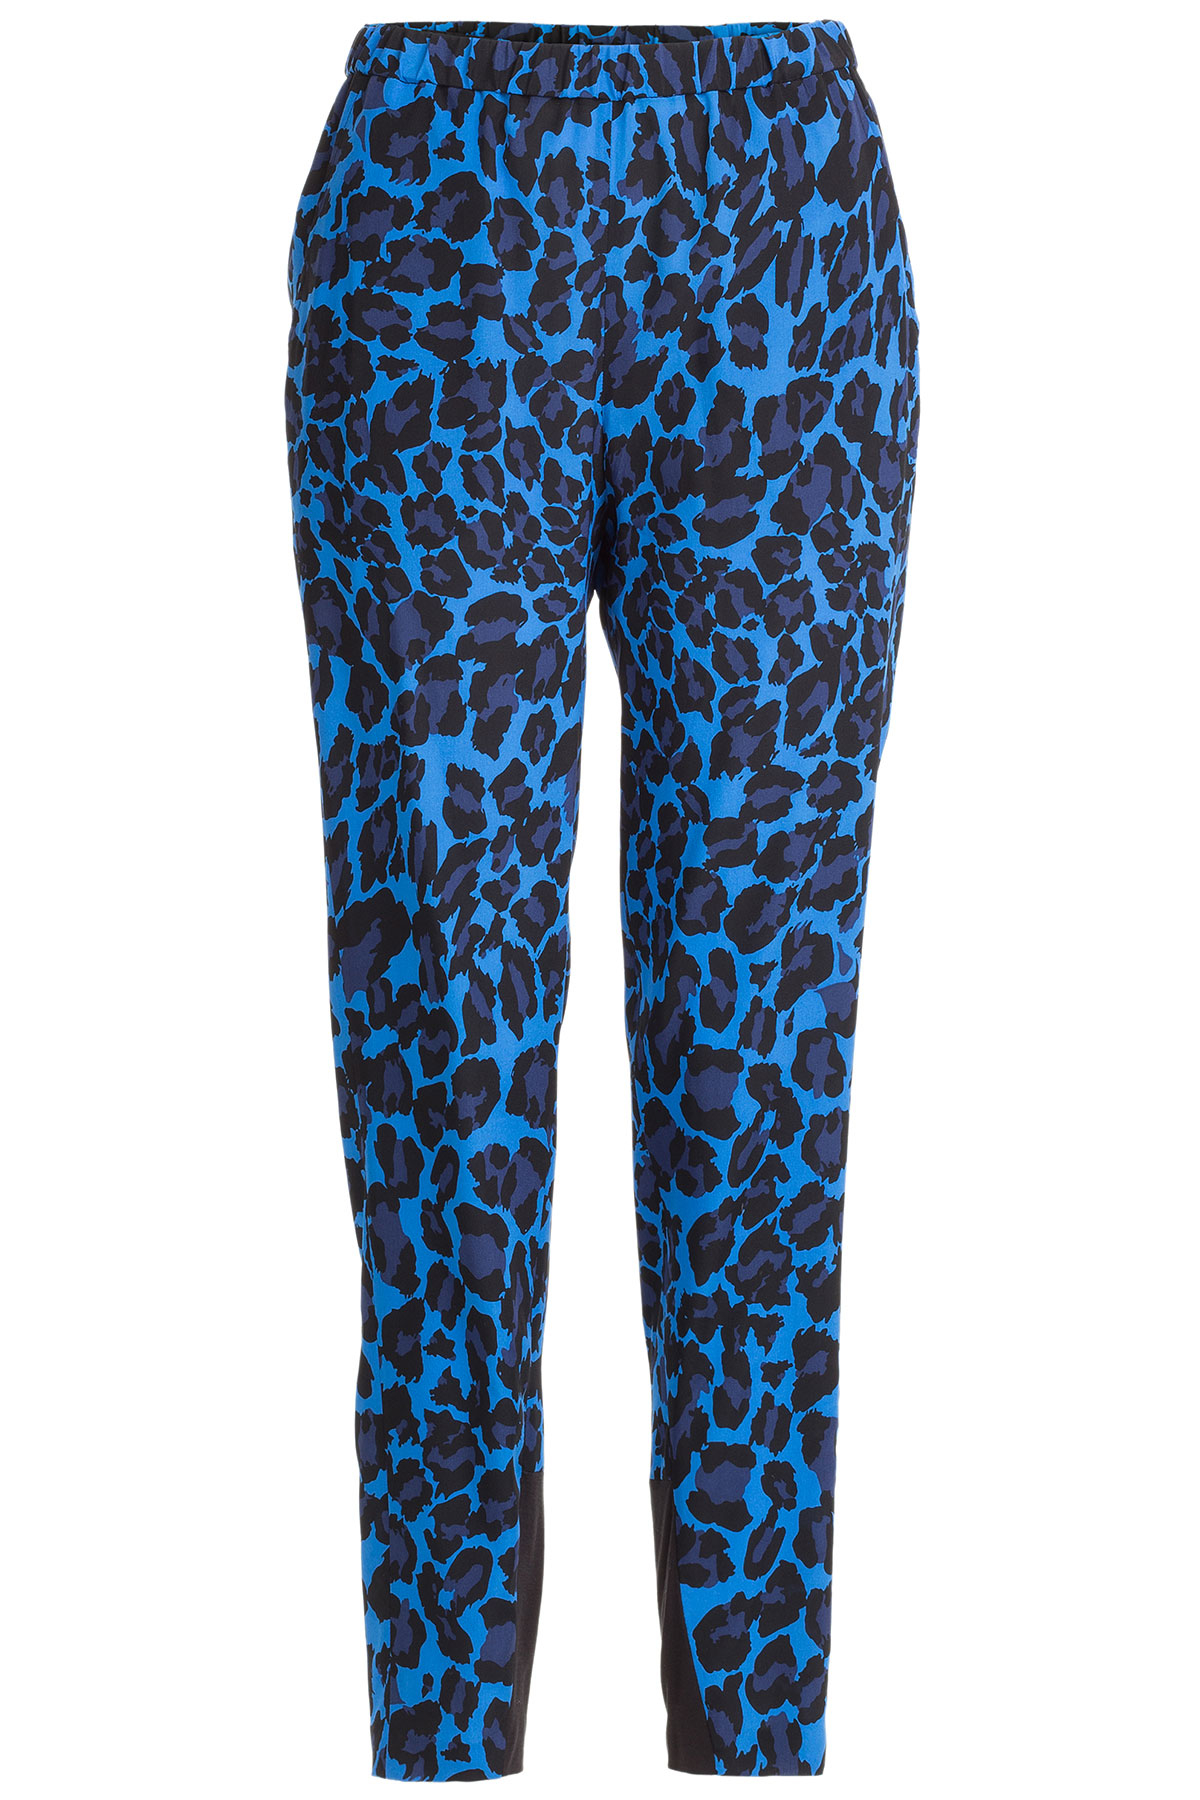 steffen schraut silk blend leopard print track pants blue in blue leopard lyst. Black Bedroom Furniture Sets. Home Design Ideas